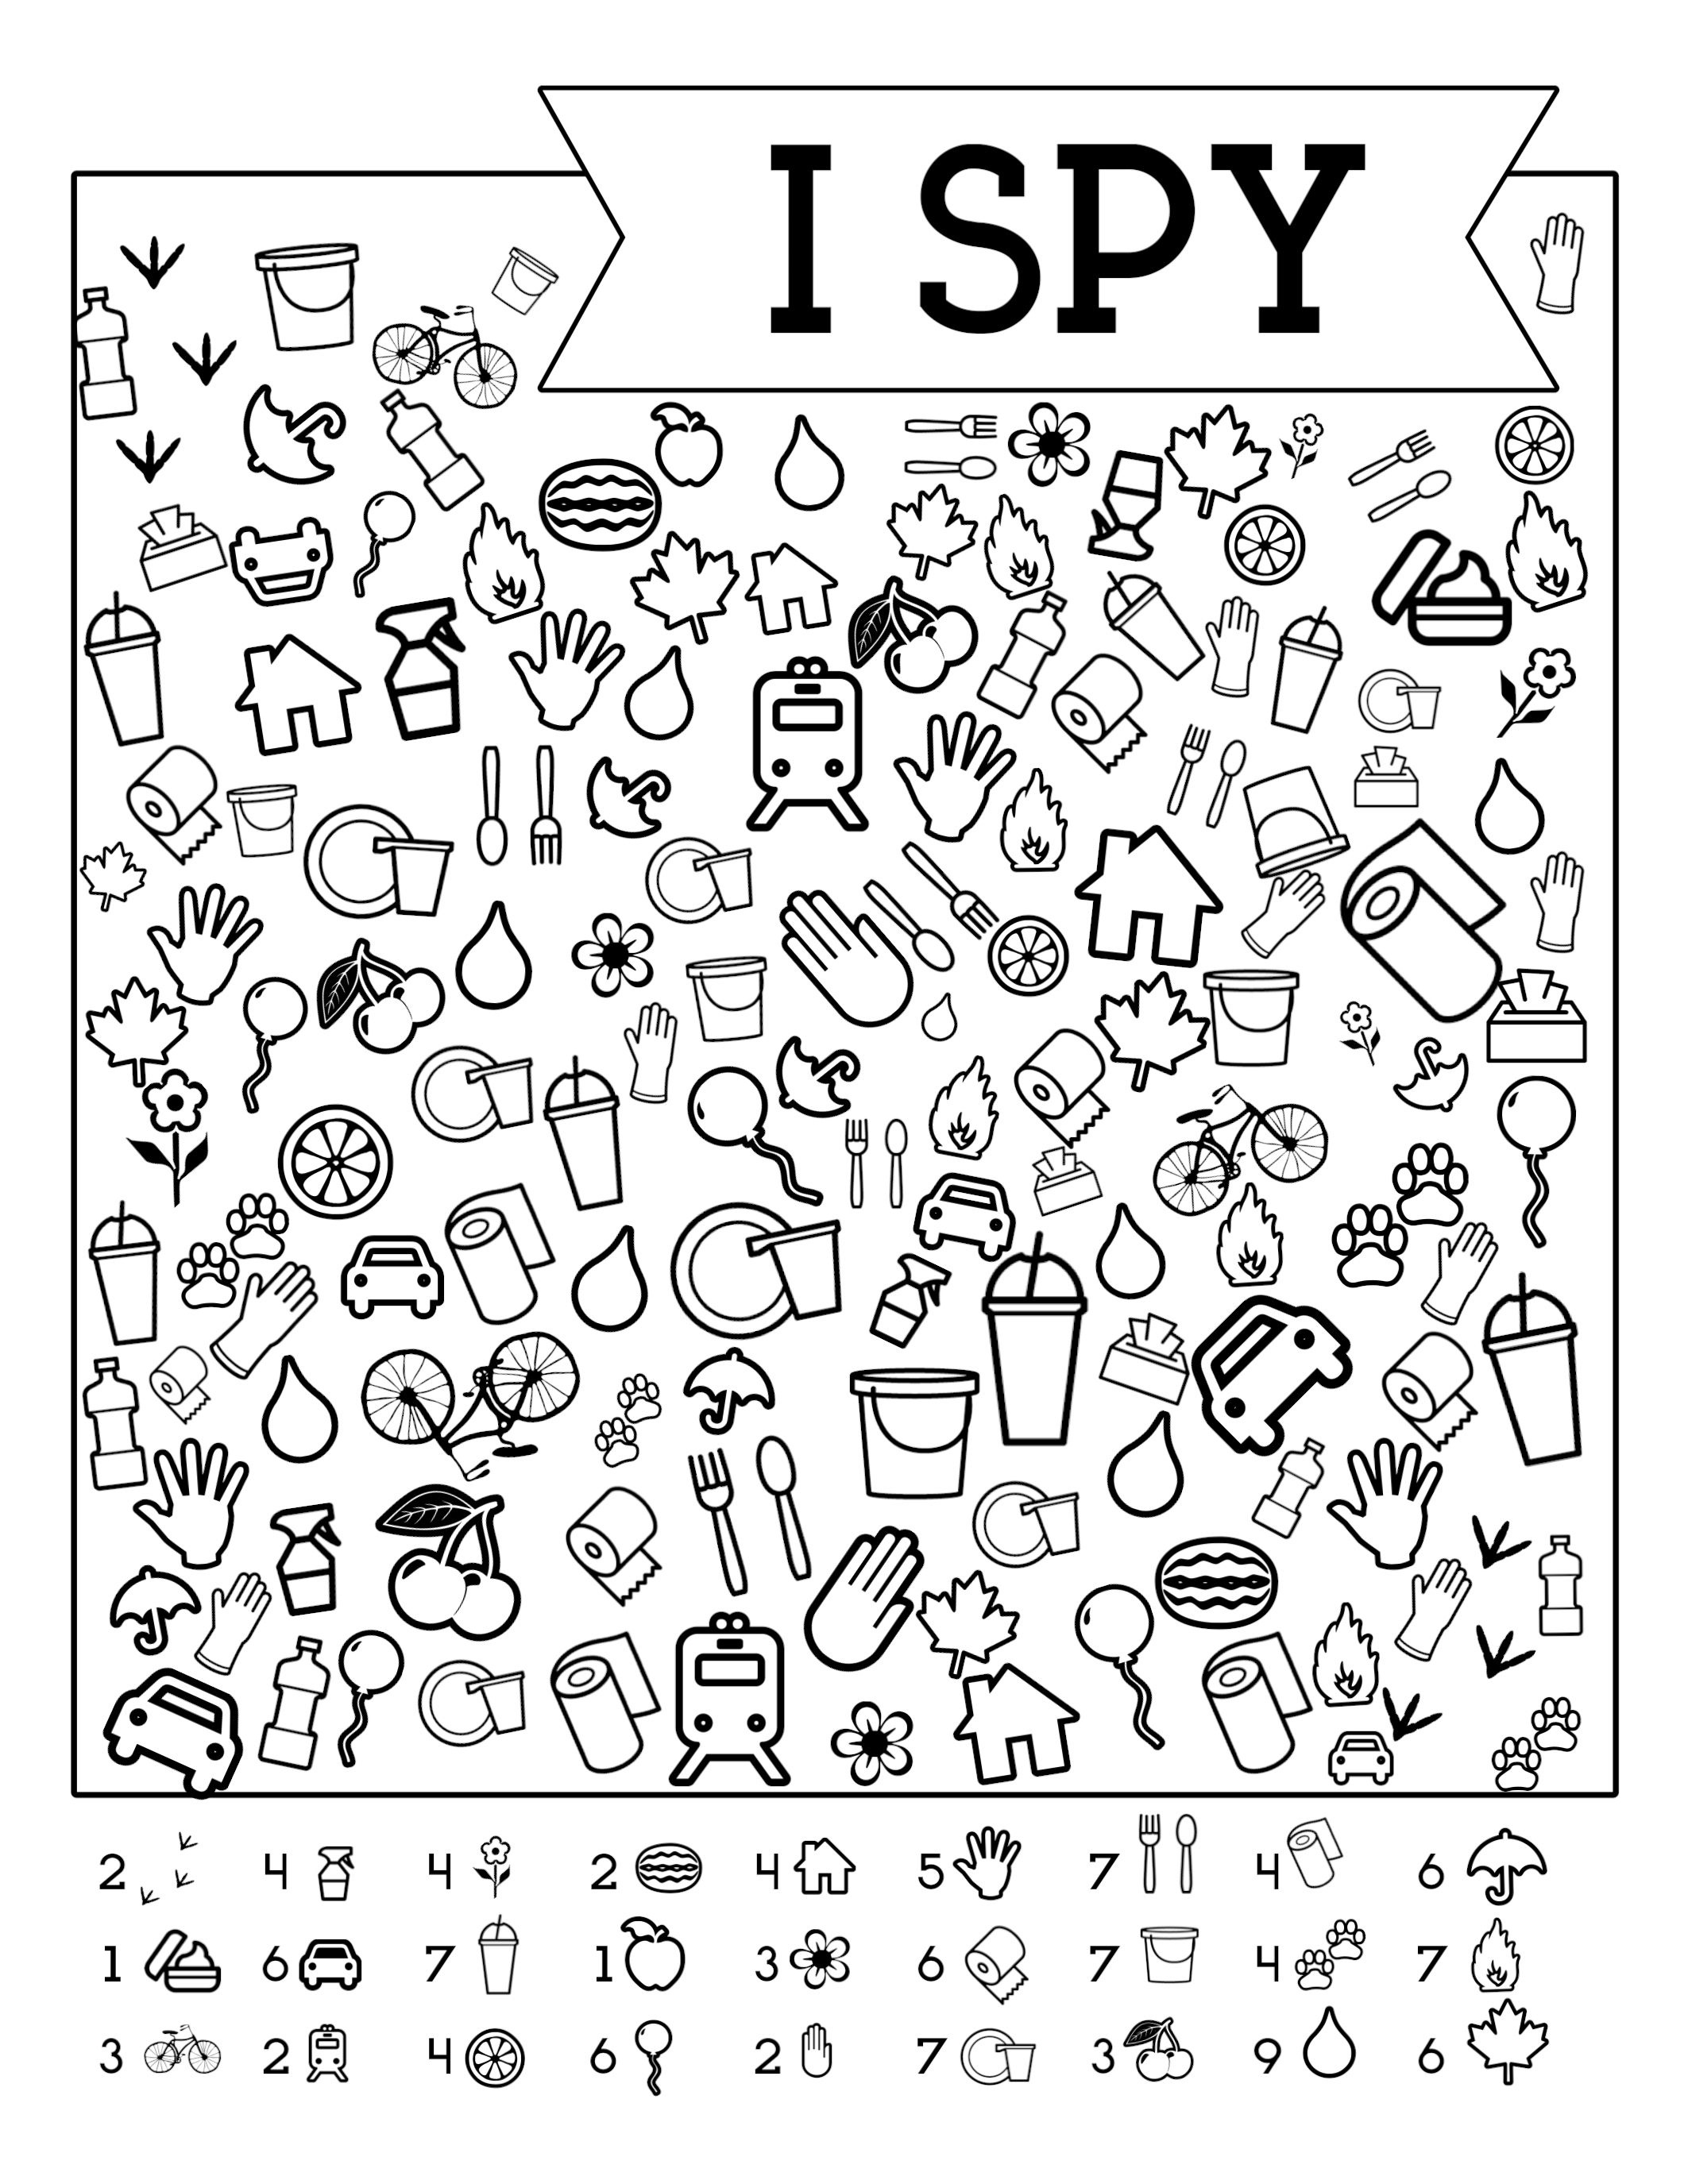 I-Spy-Free-Printable-Kids-Game | Spy School Camp | Spy Games For - Free Printable I Spy Puzzles